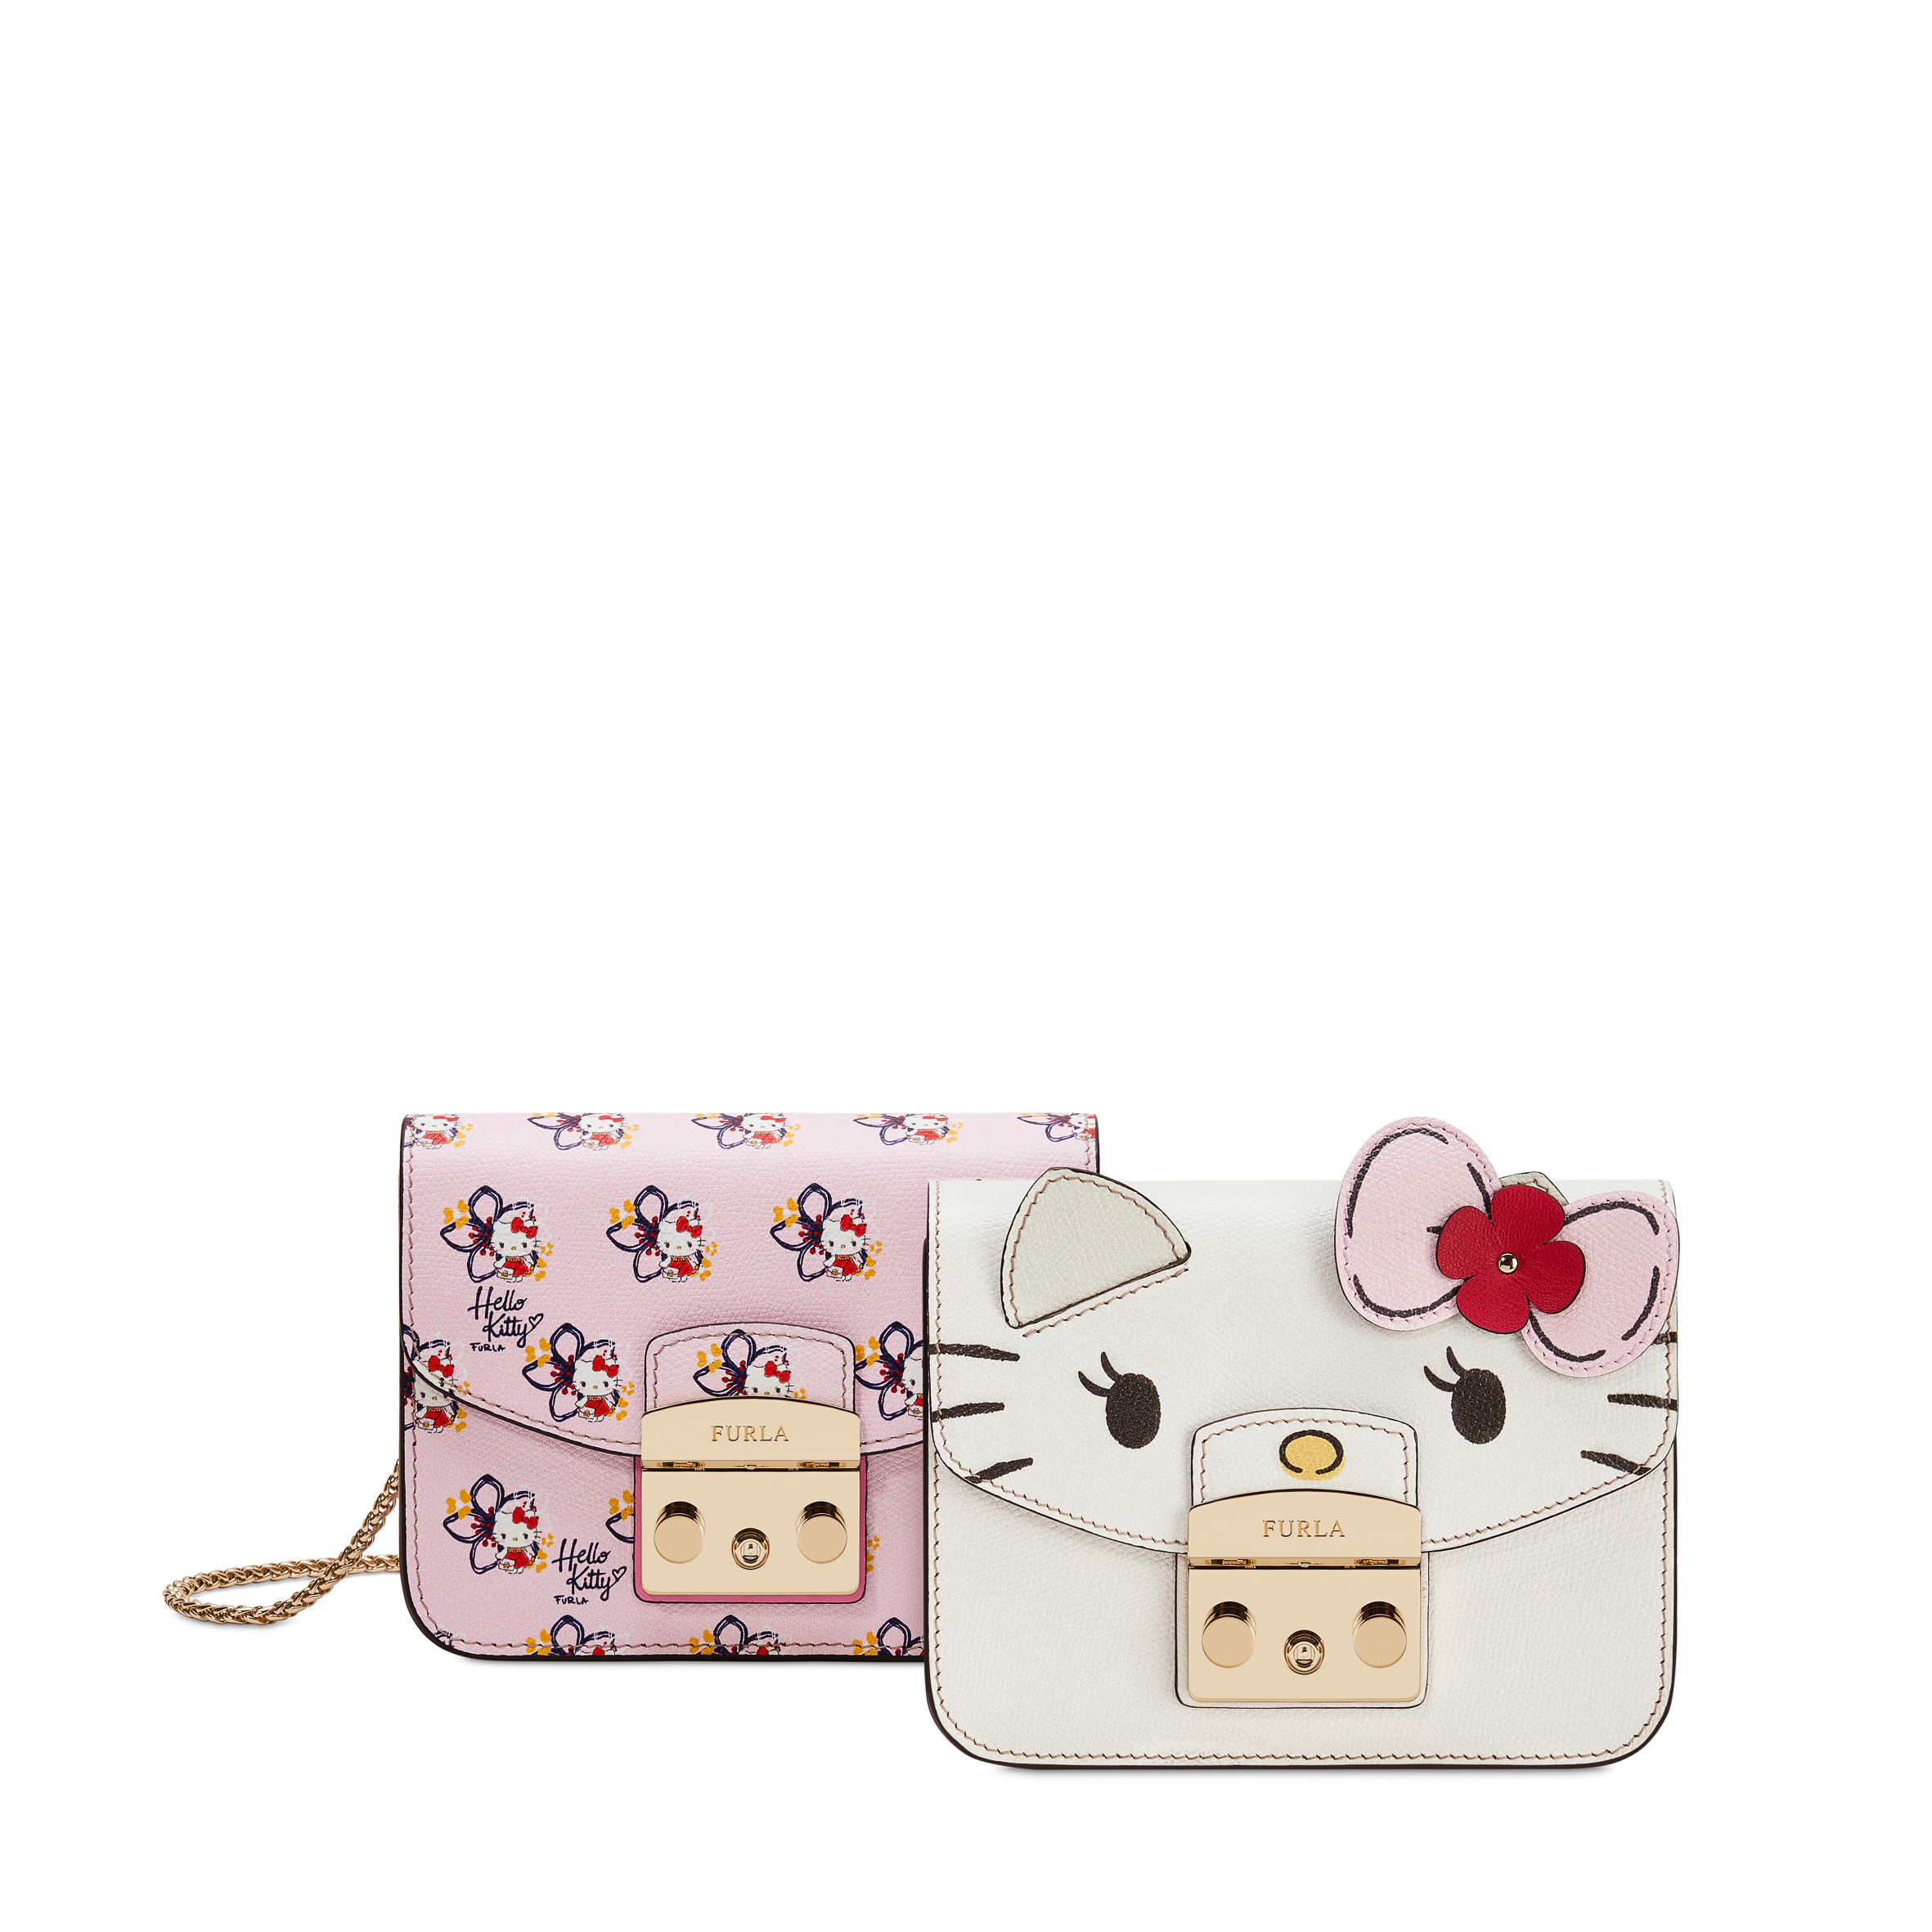 953152_953169_BOD4_HELLO KITTY MINI CROSSBODY_PETALO_4B